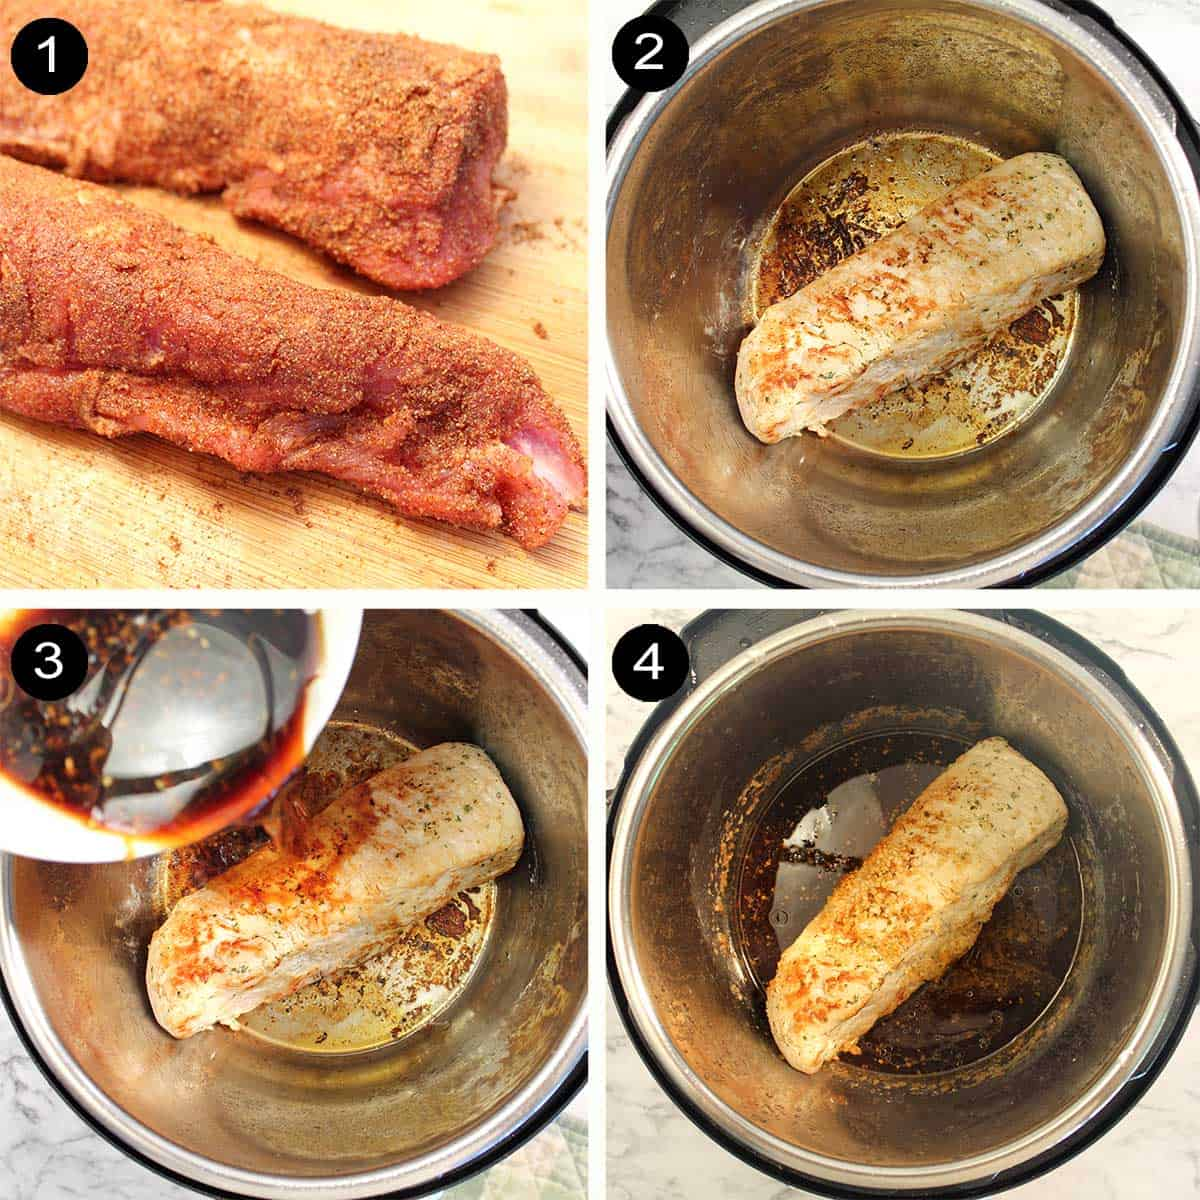 Steps for preparing pork loin.